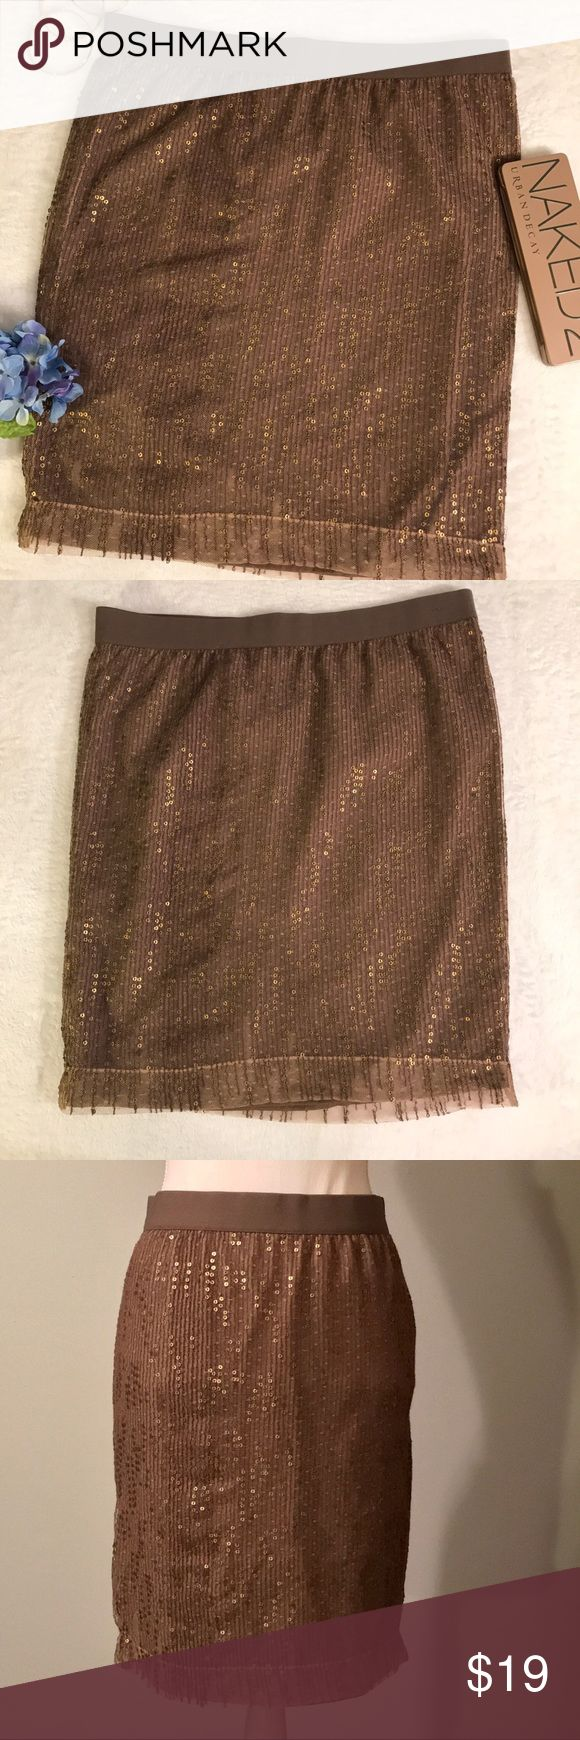 "Gap Brown Gold Sequin Pencil Skirt Gap brown sequin pencil skirt. Dark brown pencil skirt. Elastic pull on waist band. Seamless skirt. Brown sheer overlay with gold tone shimmery sequin detail. Dark brown lining. Size 6. EUC, excellent used condition. Measurements taken laid flat. 16"" waist, 21"" length. GAP Skirts Pencil"